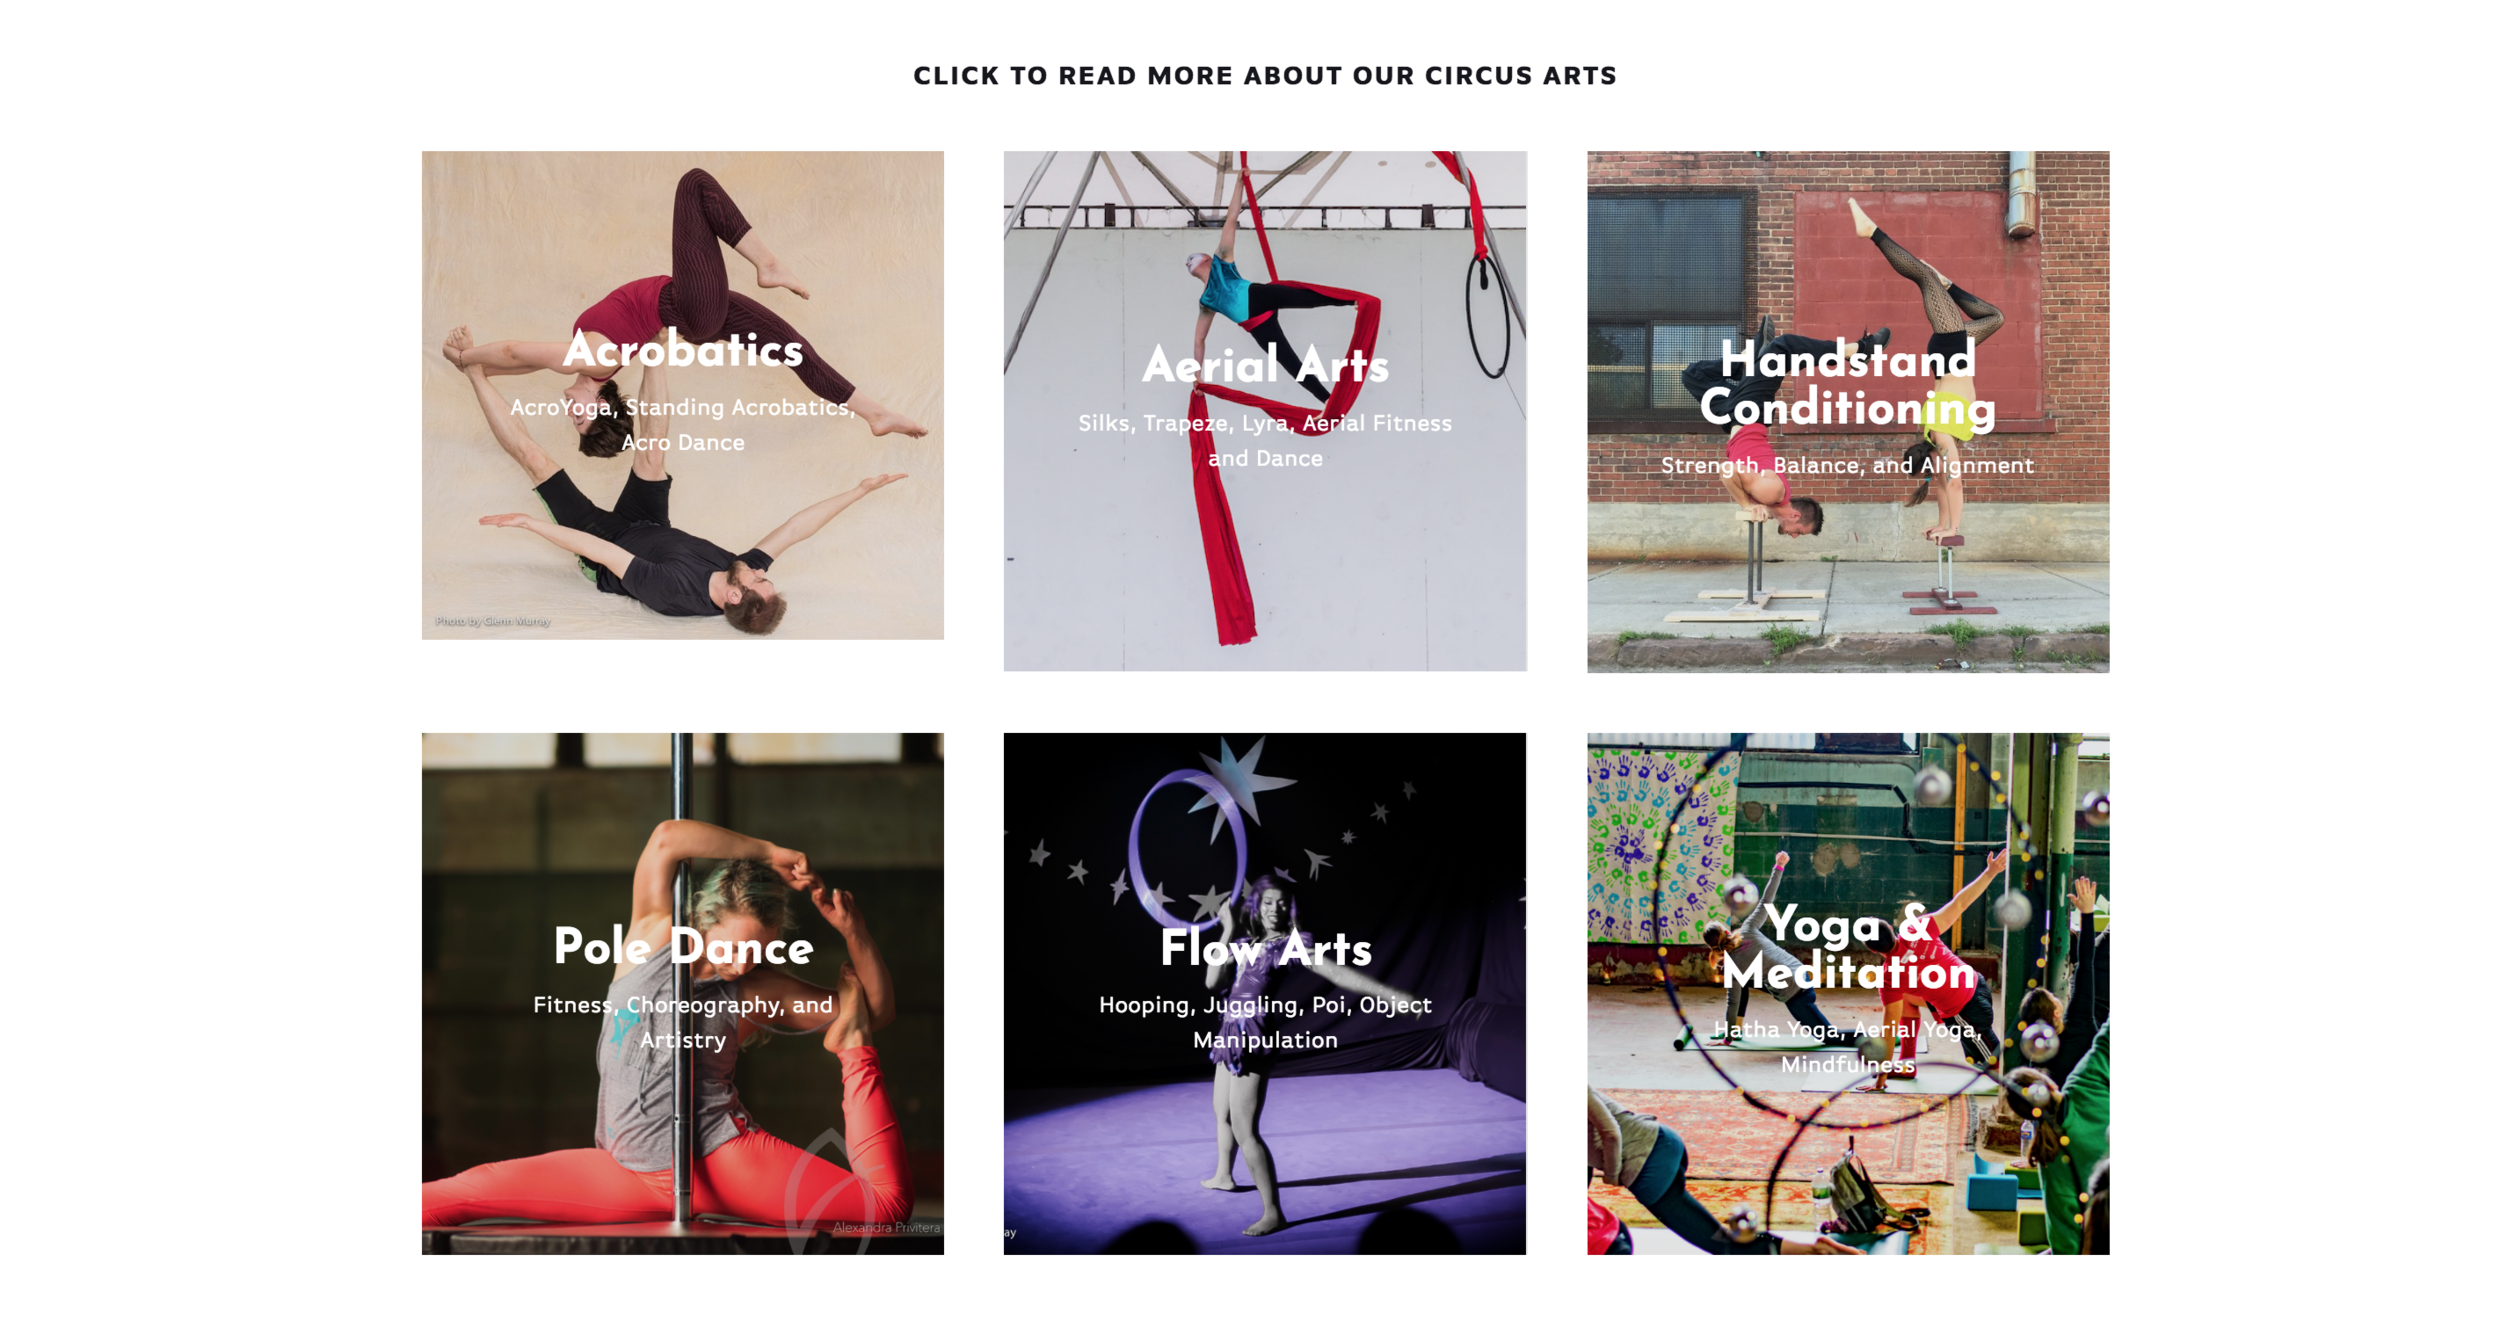 """Landing Page: The Bird's Nest Circus Arts. """"CLICK TO READ MORE ABOUT OUR CIRCUS ARTS."""" """"Acrobatics. Aerial Arts. Handstand Conditioning. Pole Dance. Flow Arts. Yoga & Meditation."""""""